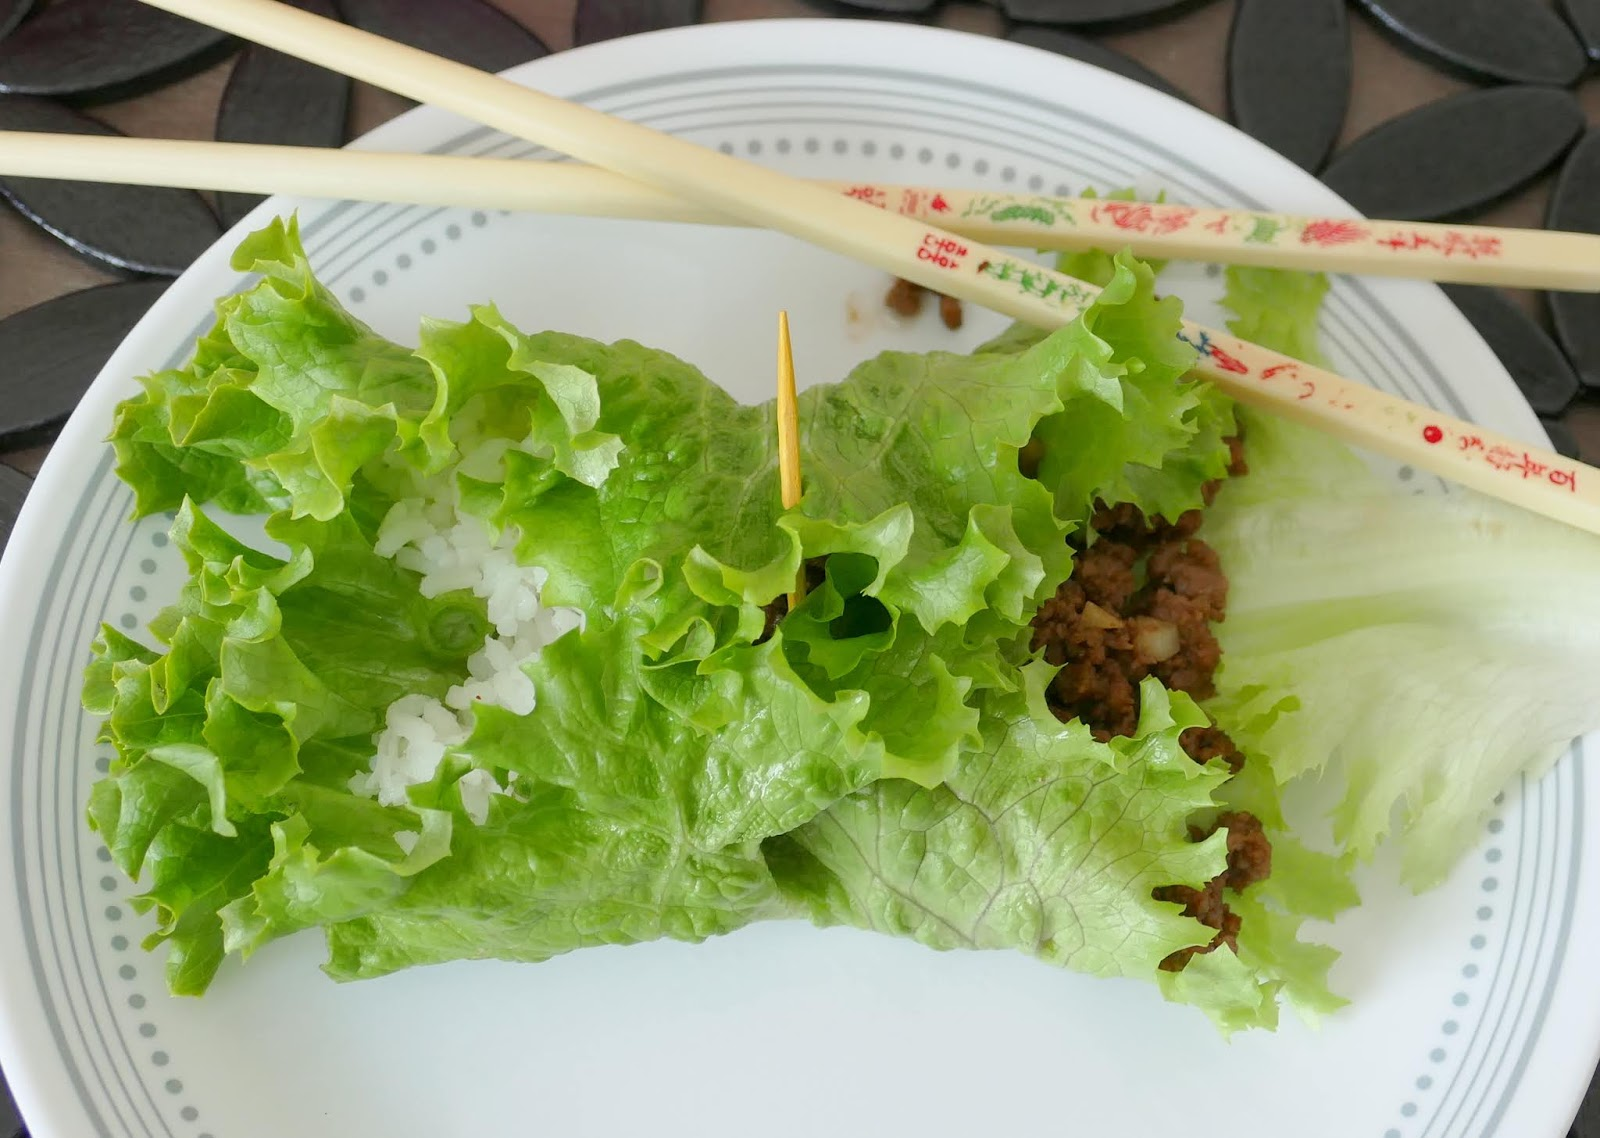 This healthy, easy and tasty lettuce wrap recipe is perfect for lunch or dinner! It combines garlic, ginger, sesame oil, soy sauce and chili powder for a delicious combo of flavors! Also great served in a bowl instead of a wrap. Ready in 15 minutes!